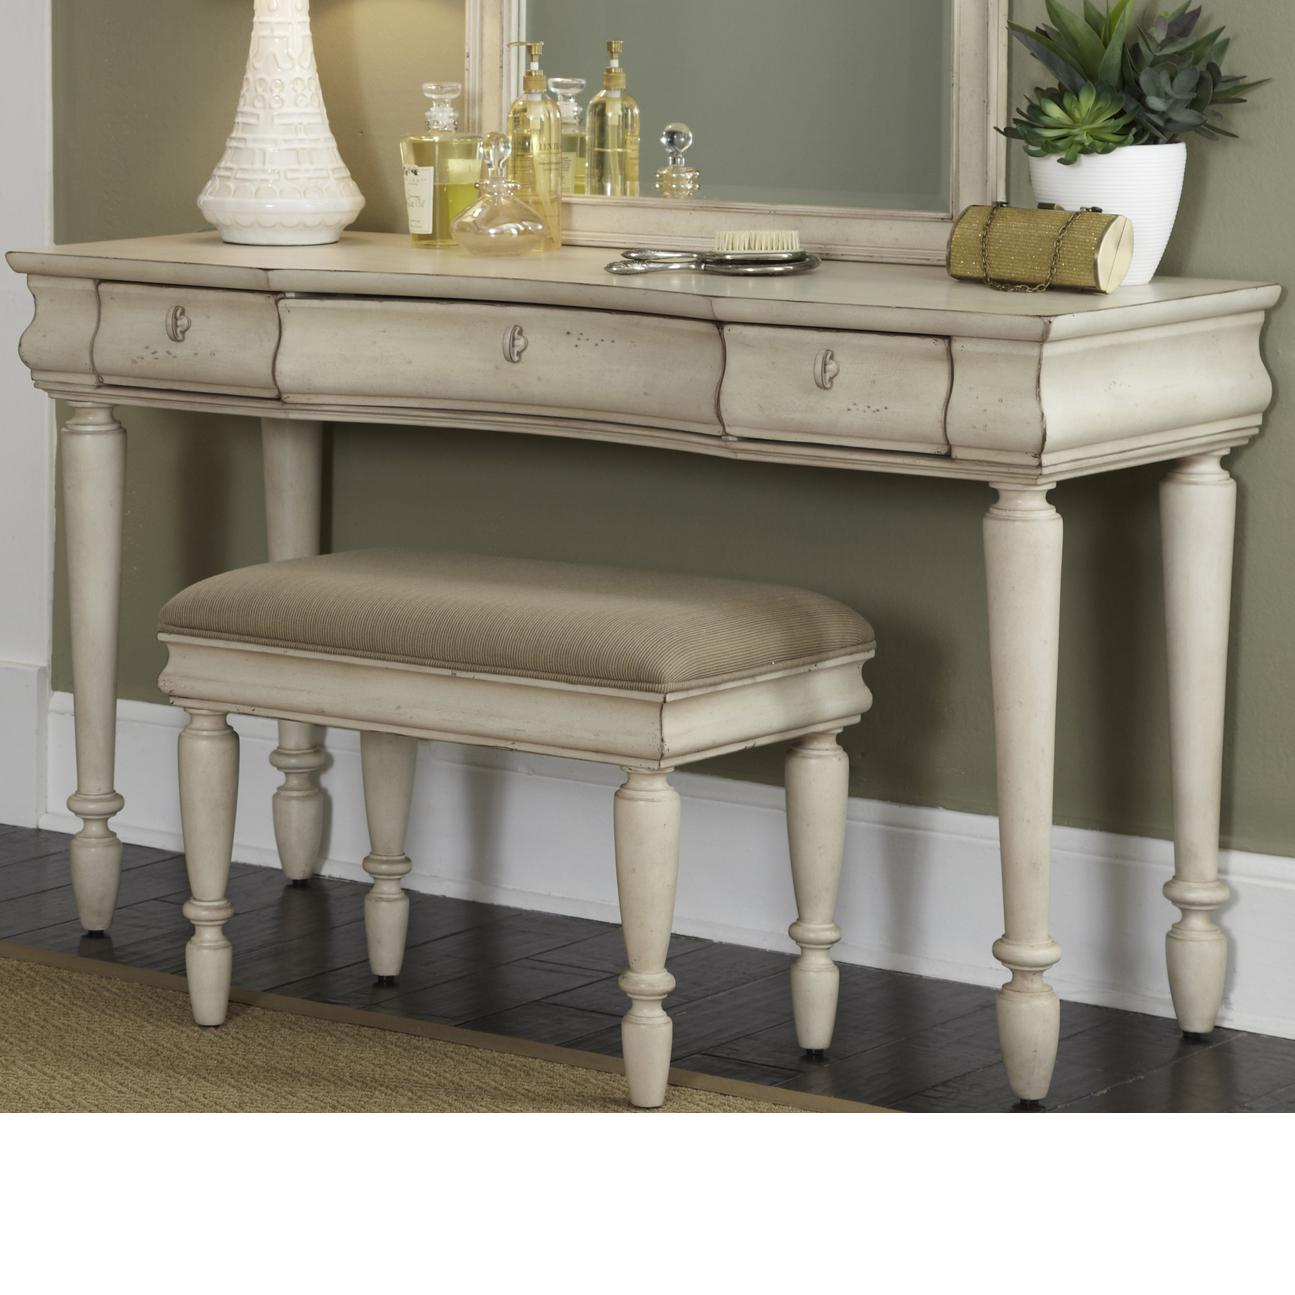 Vendor 5349 Rustic Traditions 689-BR35 Vanity Base With 3